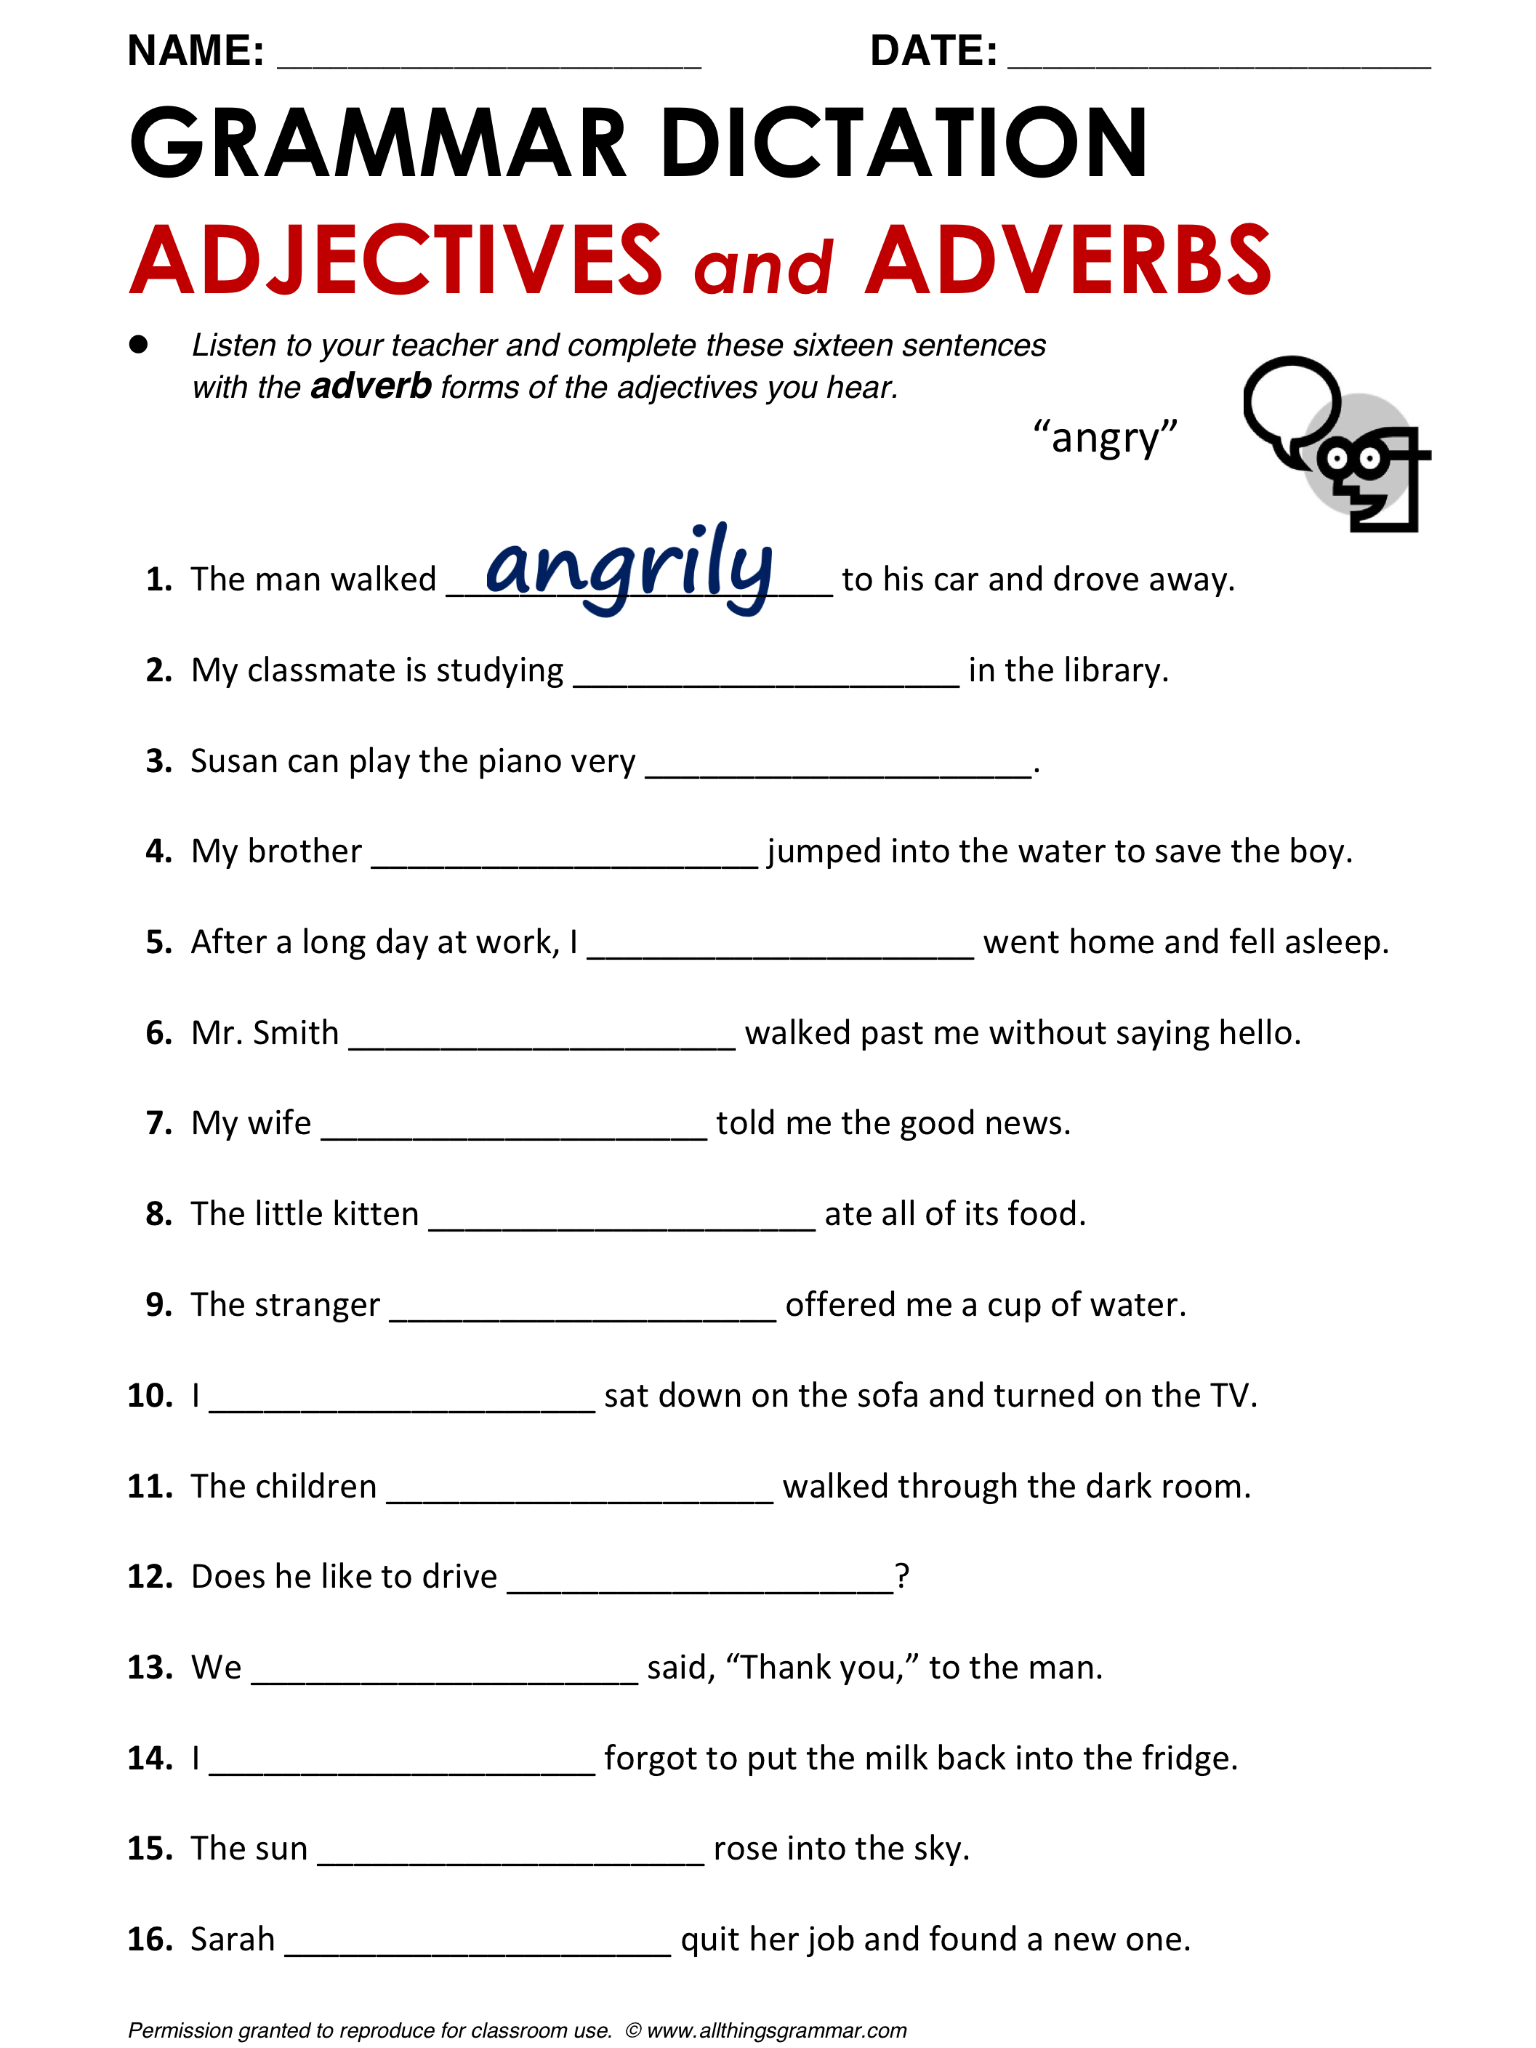 English Grammar Adjectives And Adverbs